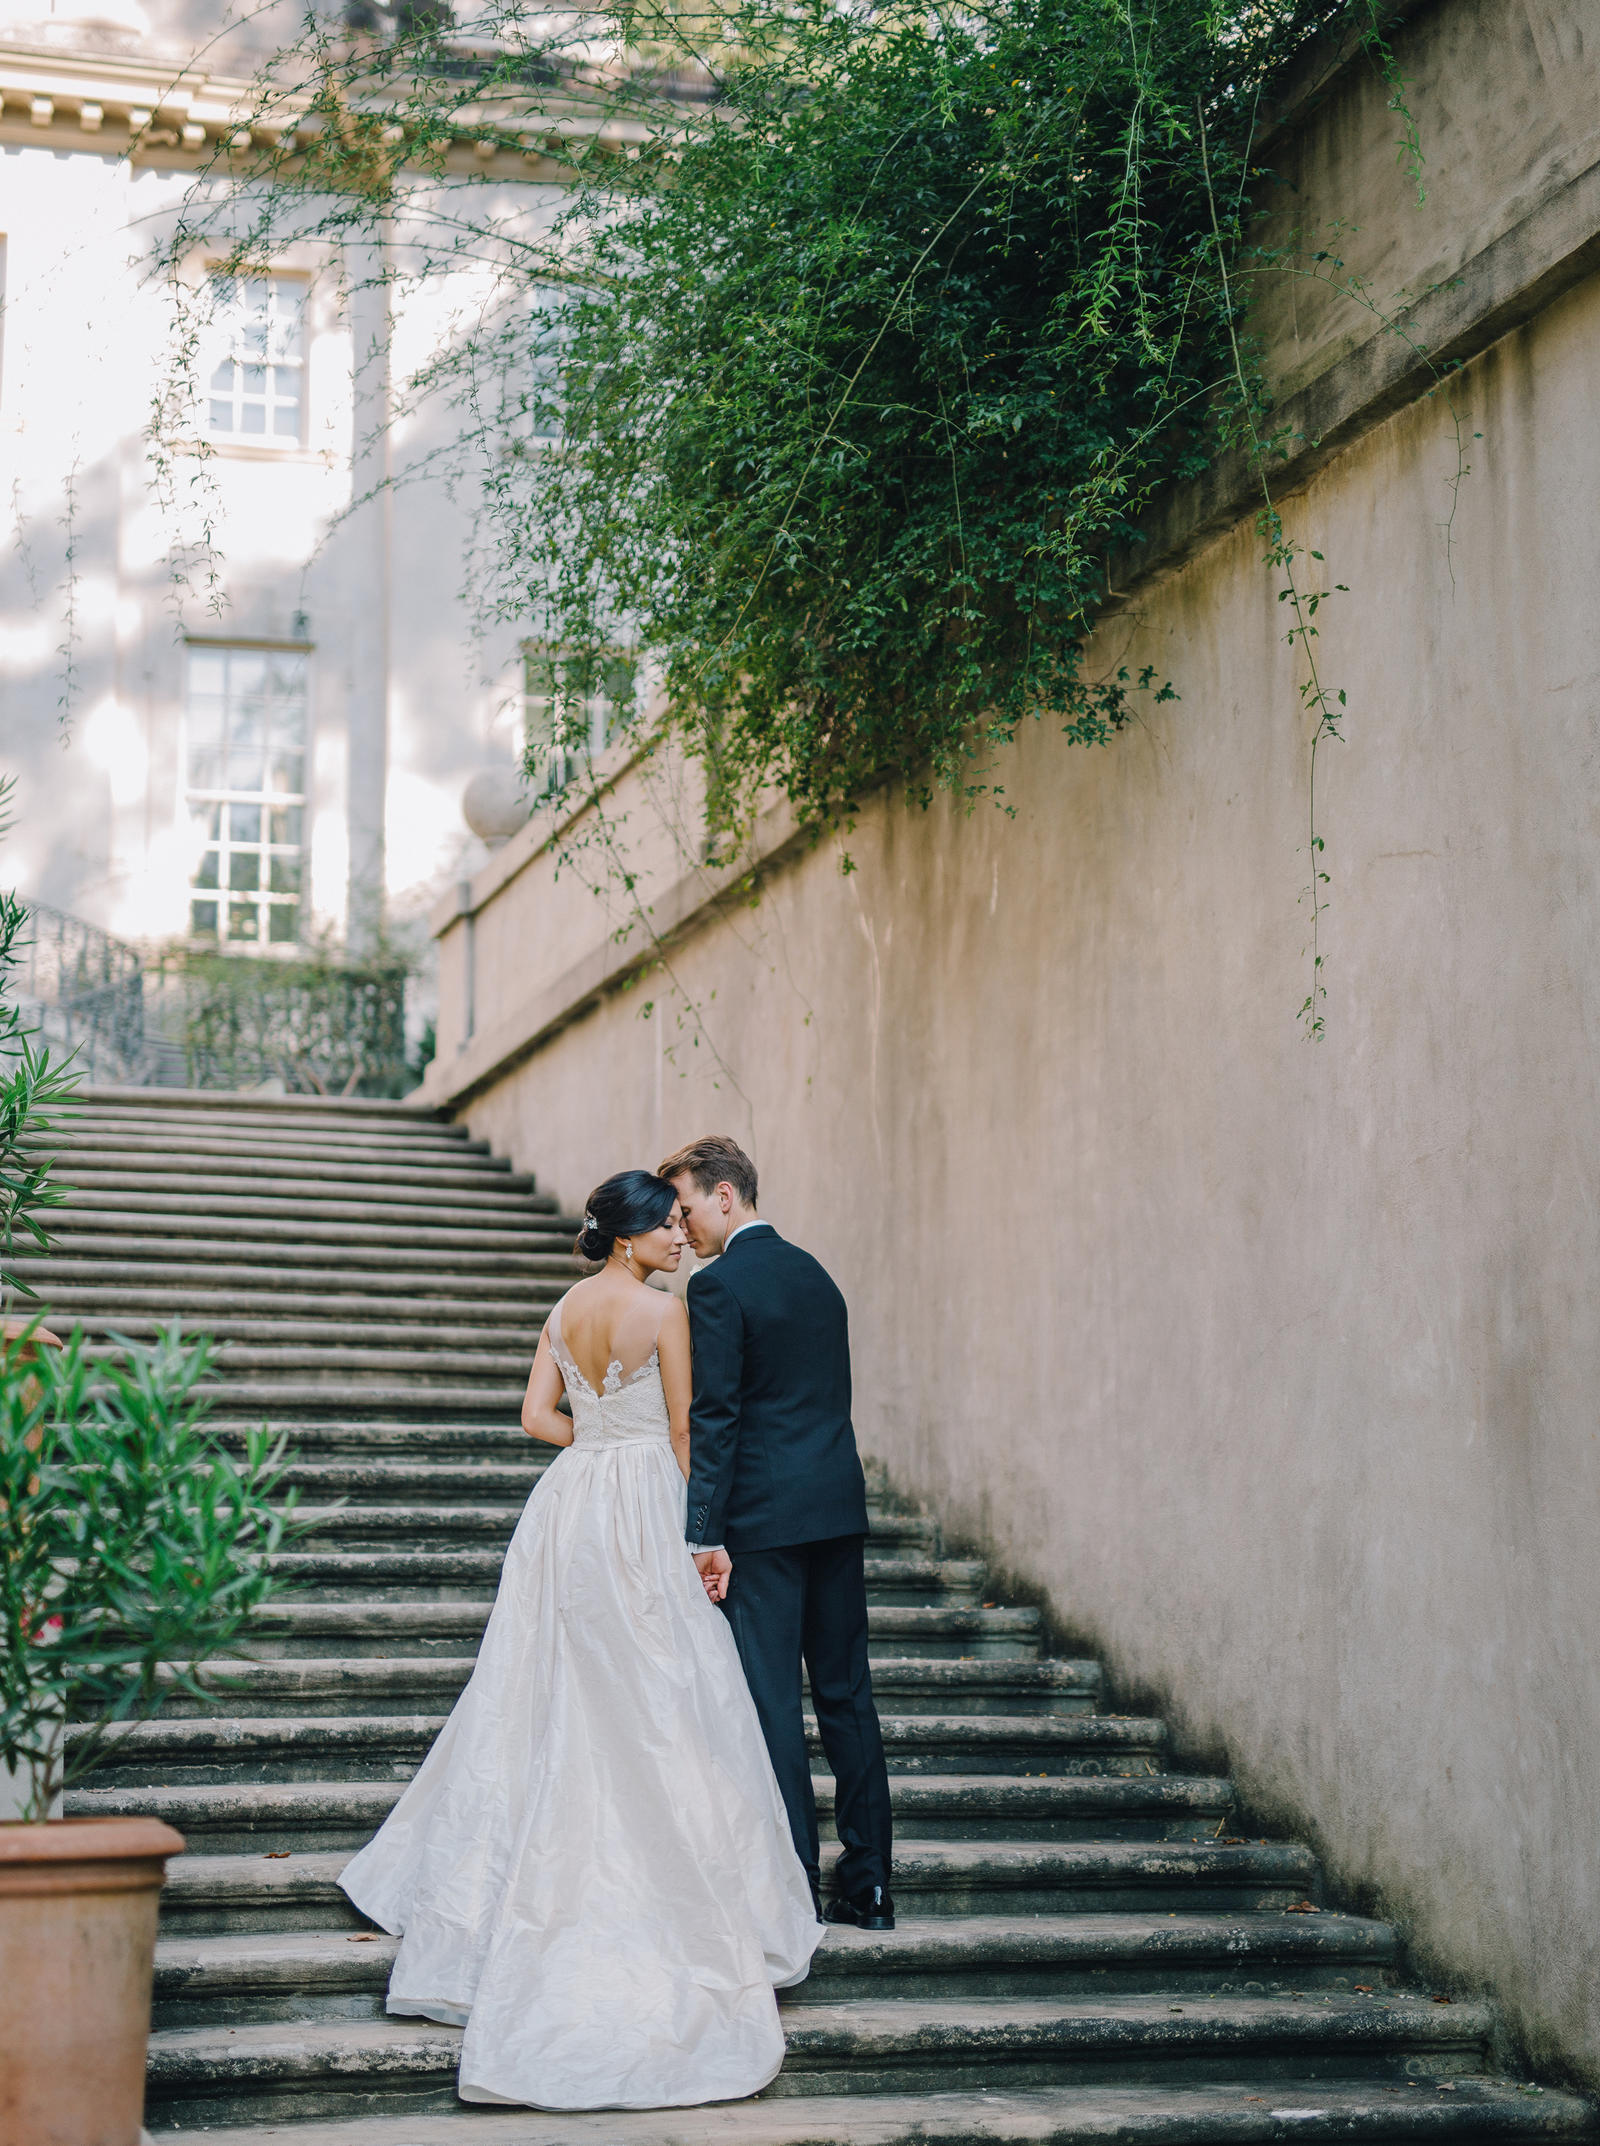 Wedding Photography | Bride and groom walking up stairs at Swan House Atlanta, GA